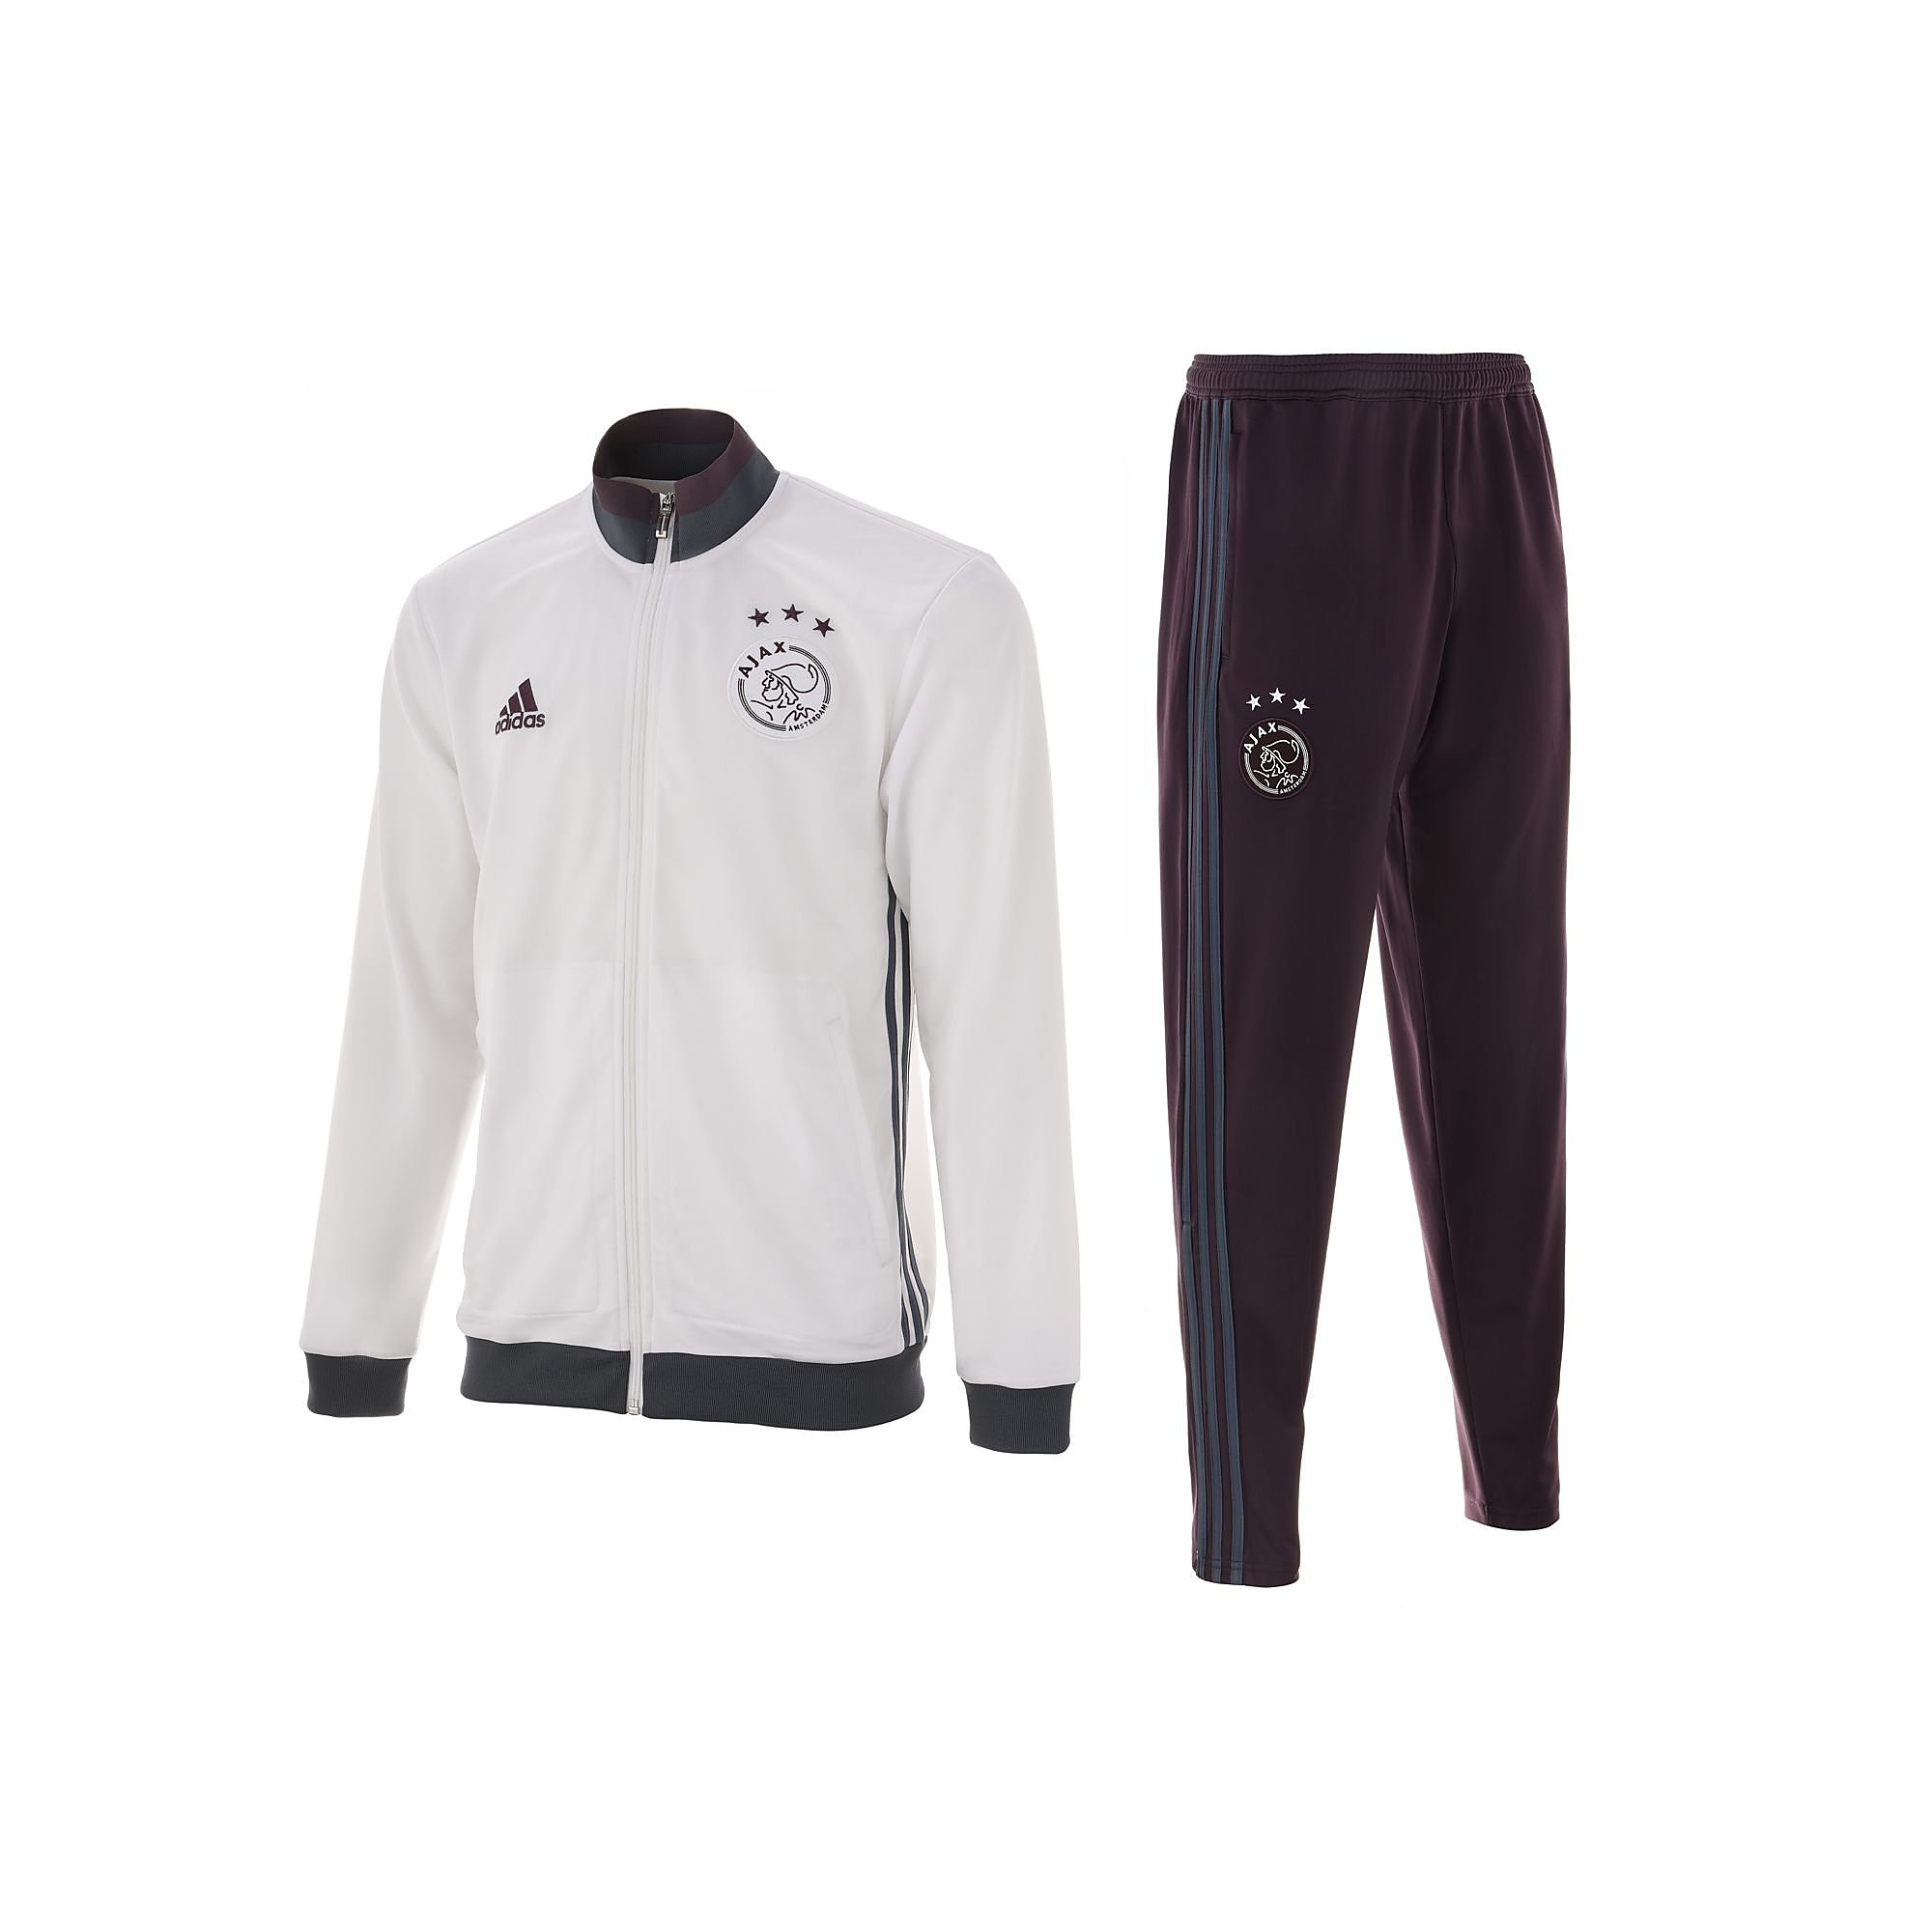 adidas AJAX-WARMING-UP PAK SR